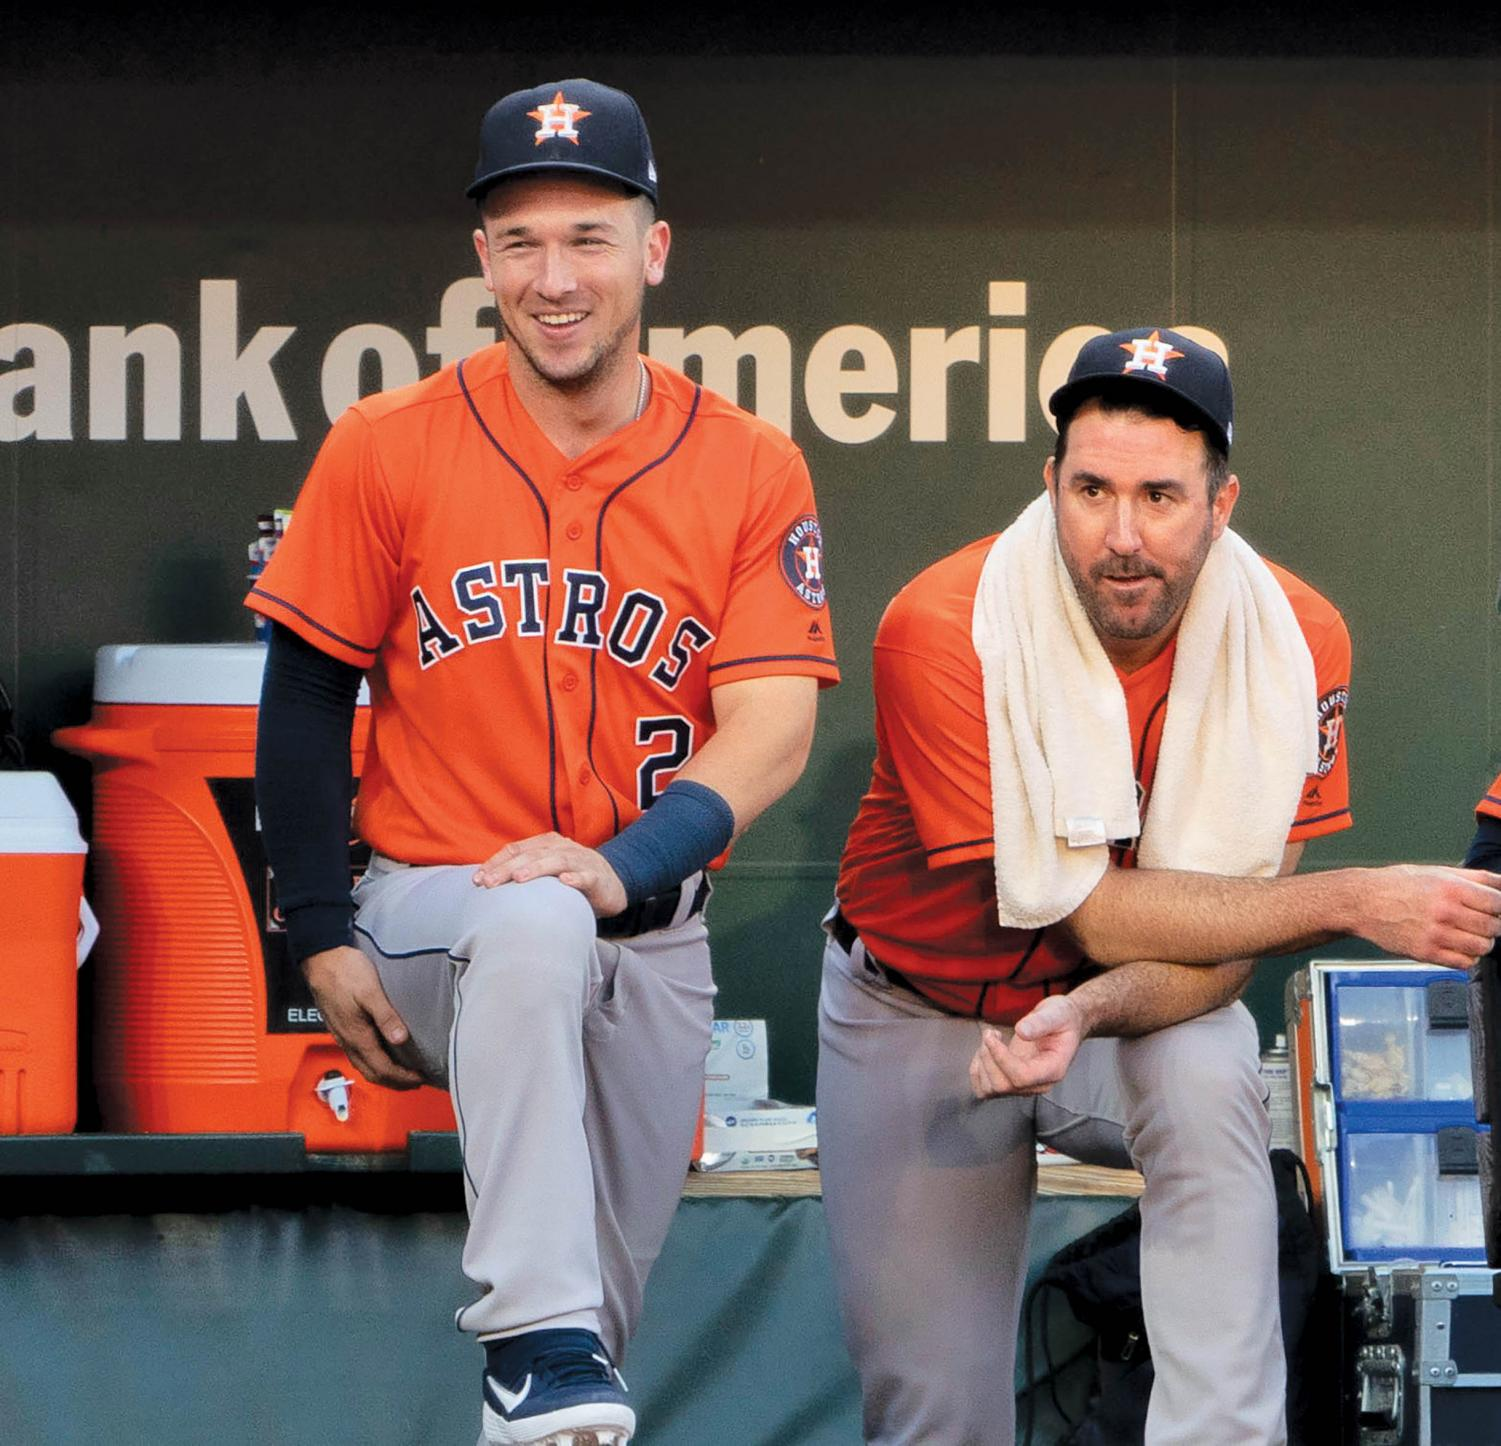 With his consistent pitching, Justin Verlander and the Houston Astros are preparing to make a deep playoff run.